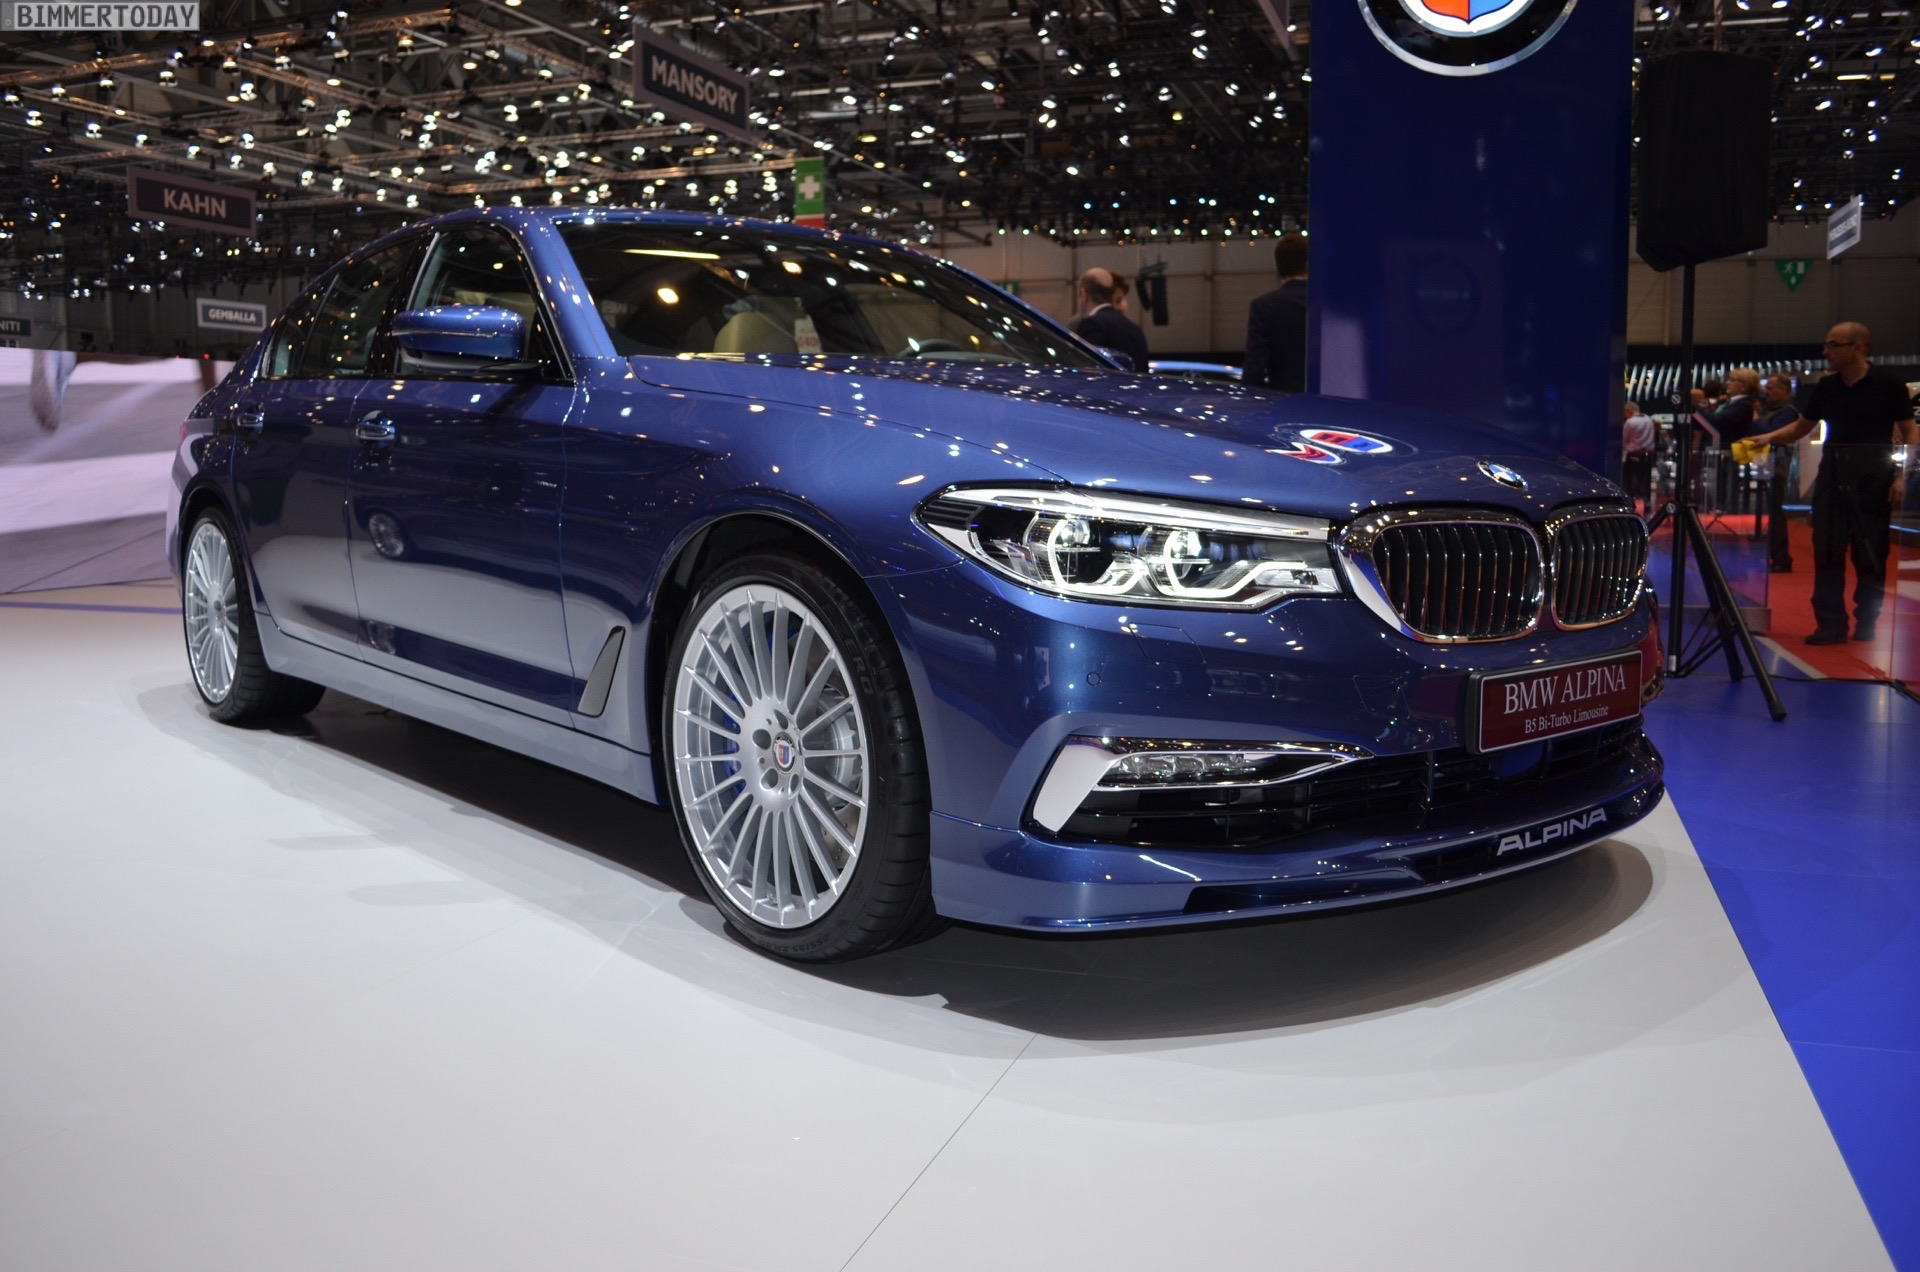 2017 Geneva World Debut Of The Bmw Alpina G30 B5 With 608 Horsepower